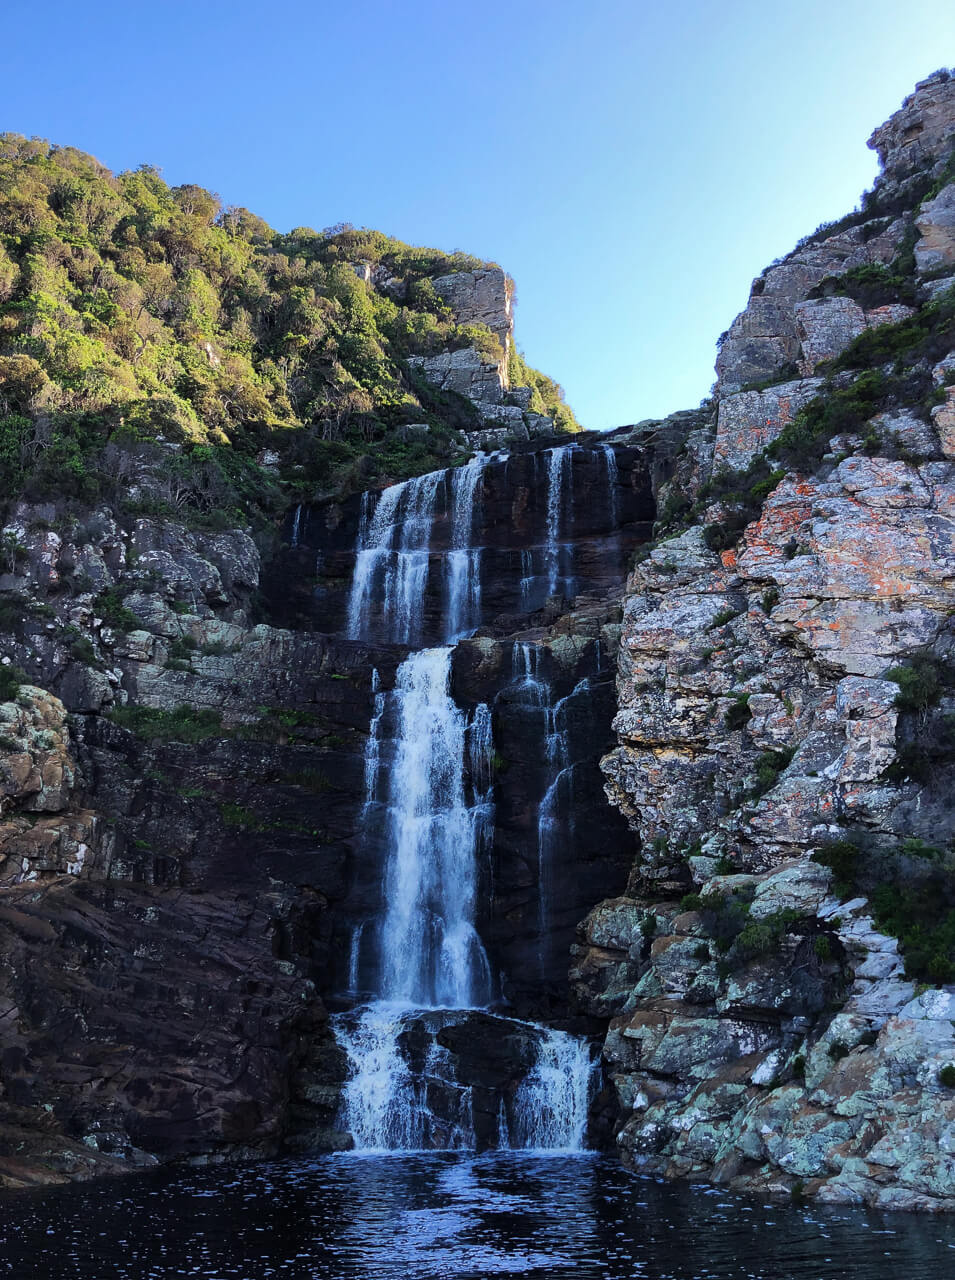 The waterfall at the end of the waterfall hike in Storms River in Tsitsikamma National Park